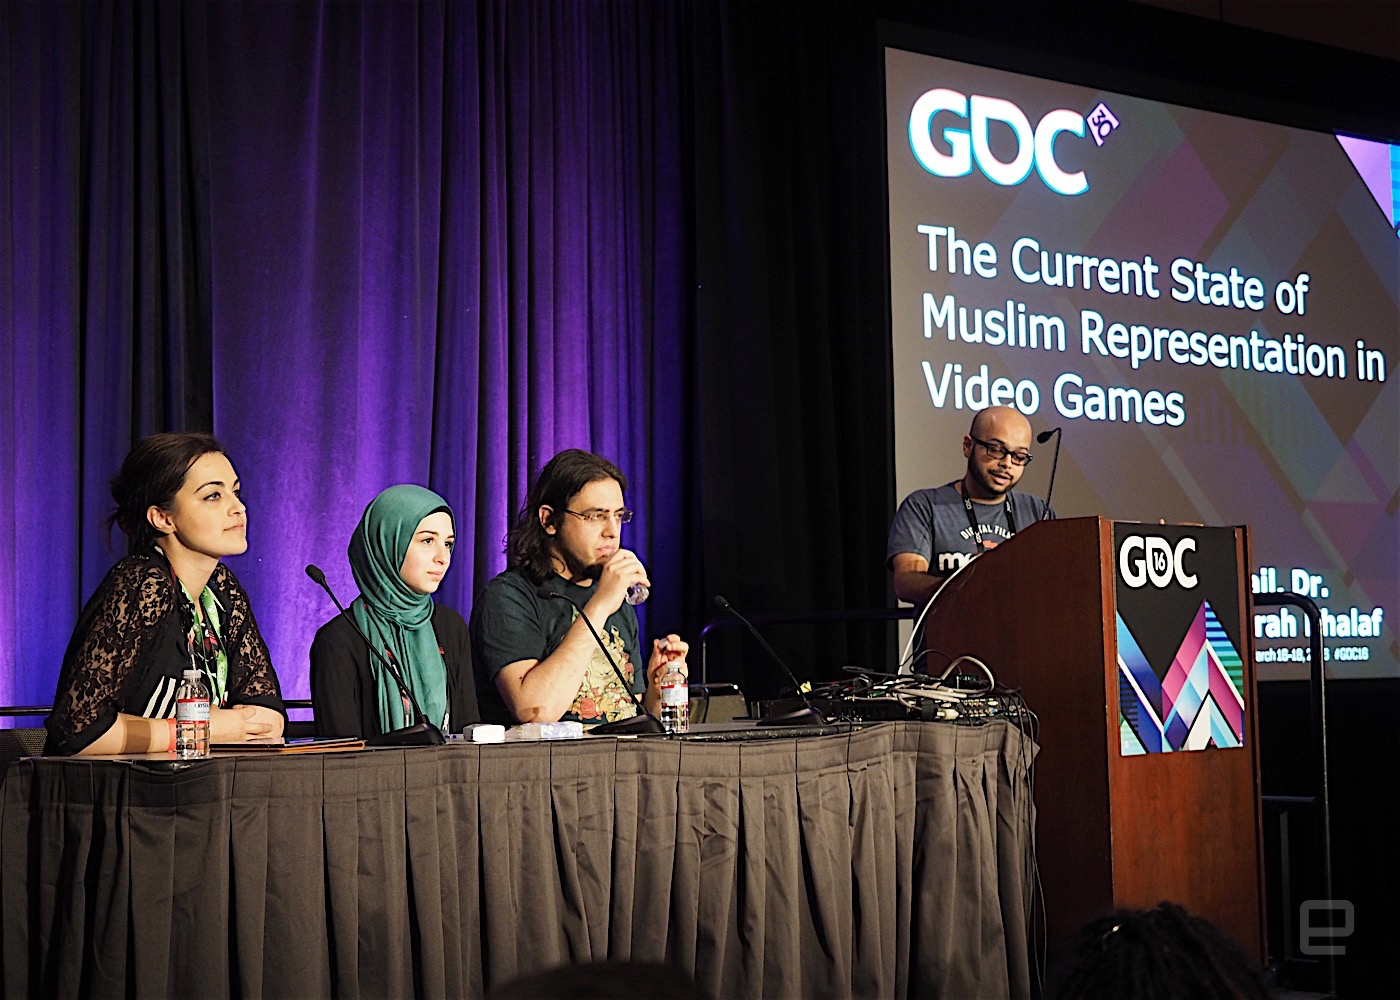 Shooting the Arabs: How video games perpetuate Muslim stereotypes